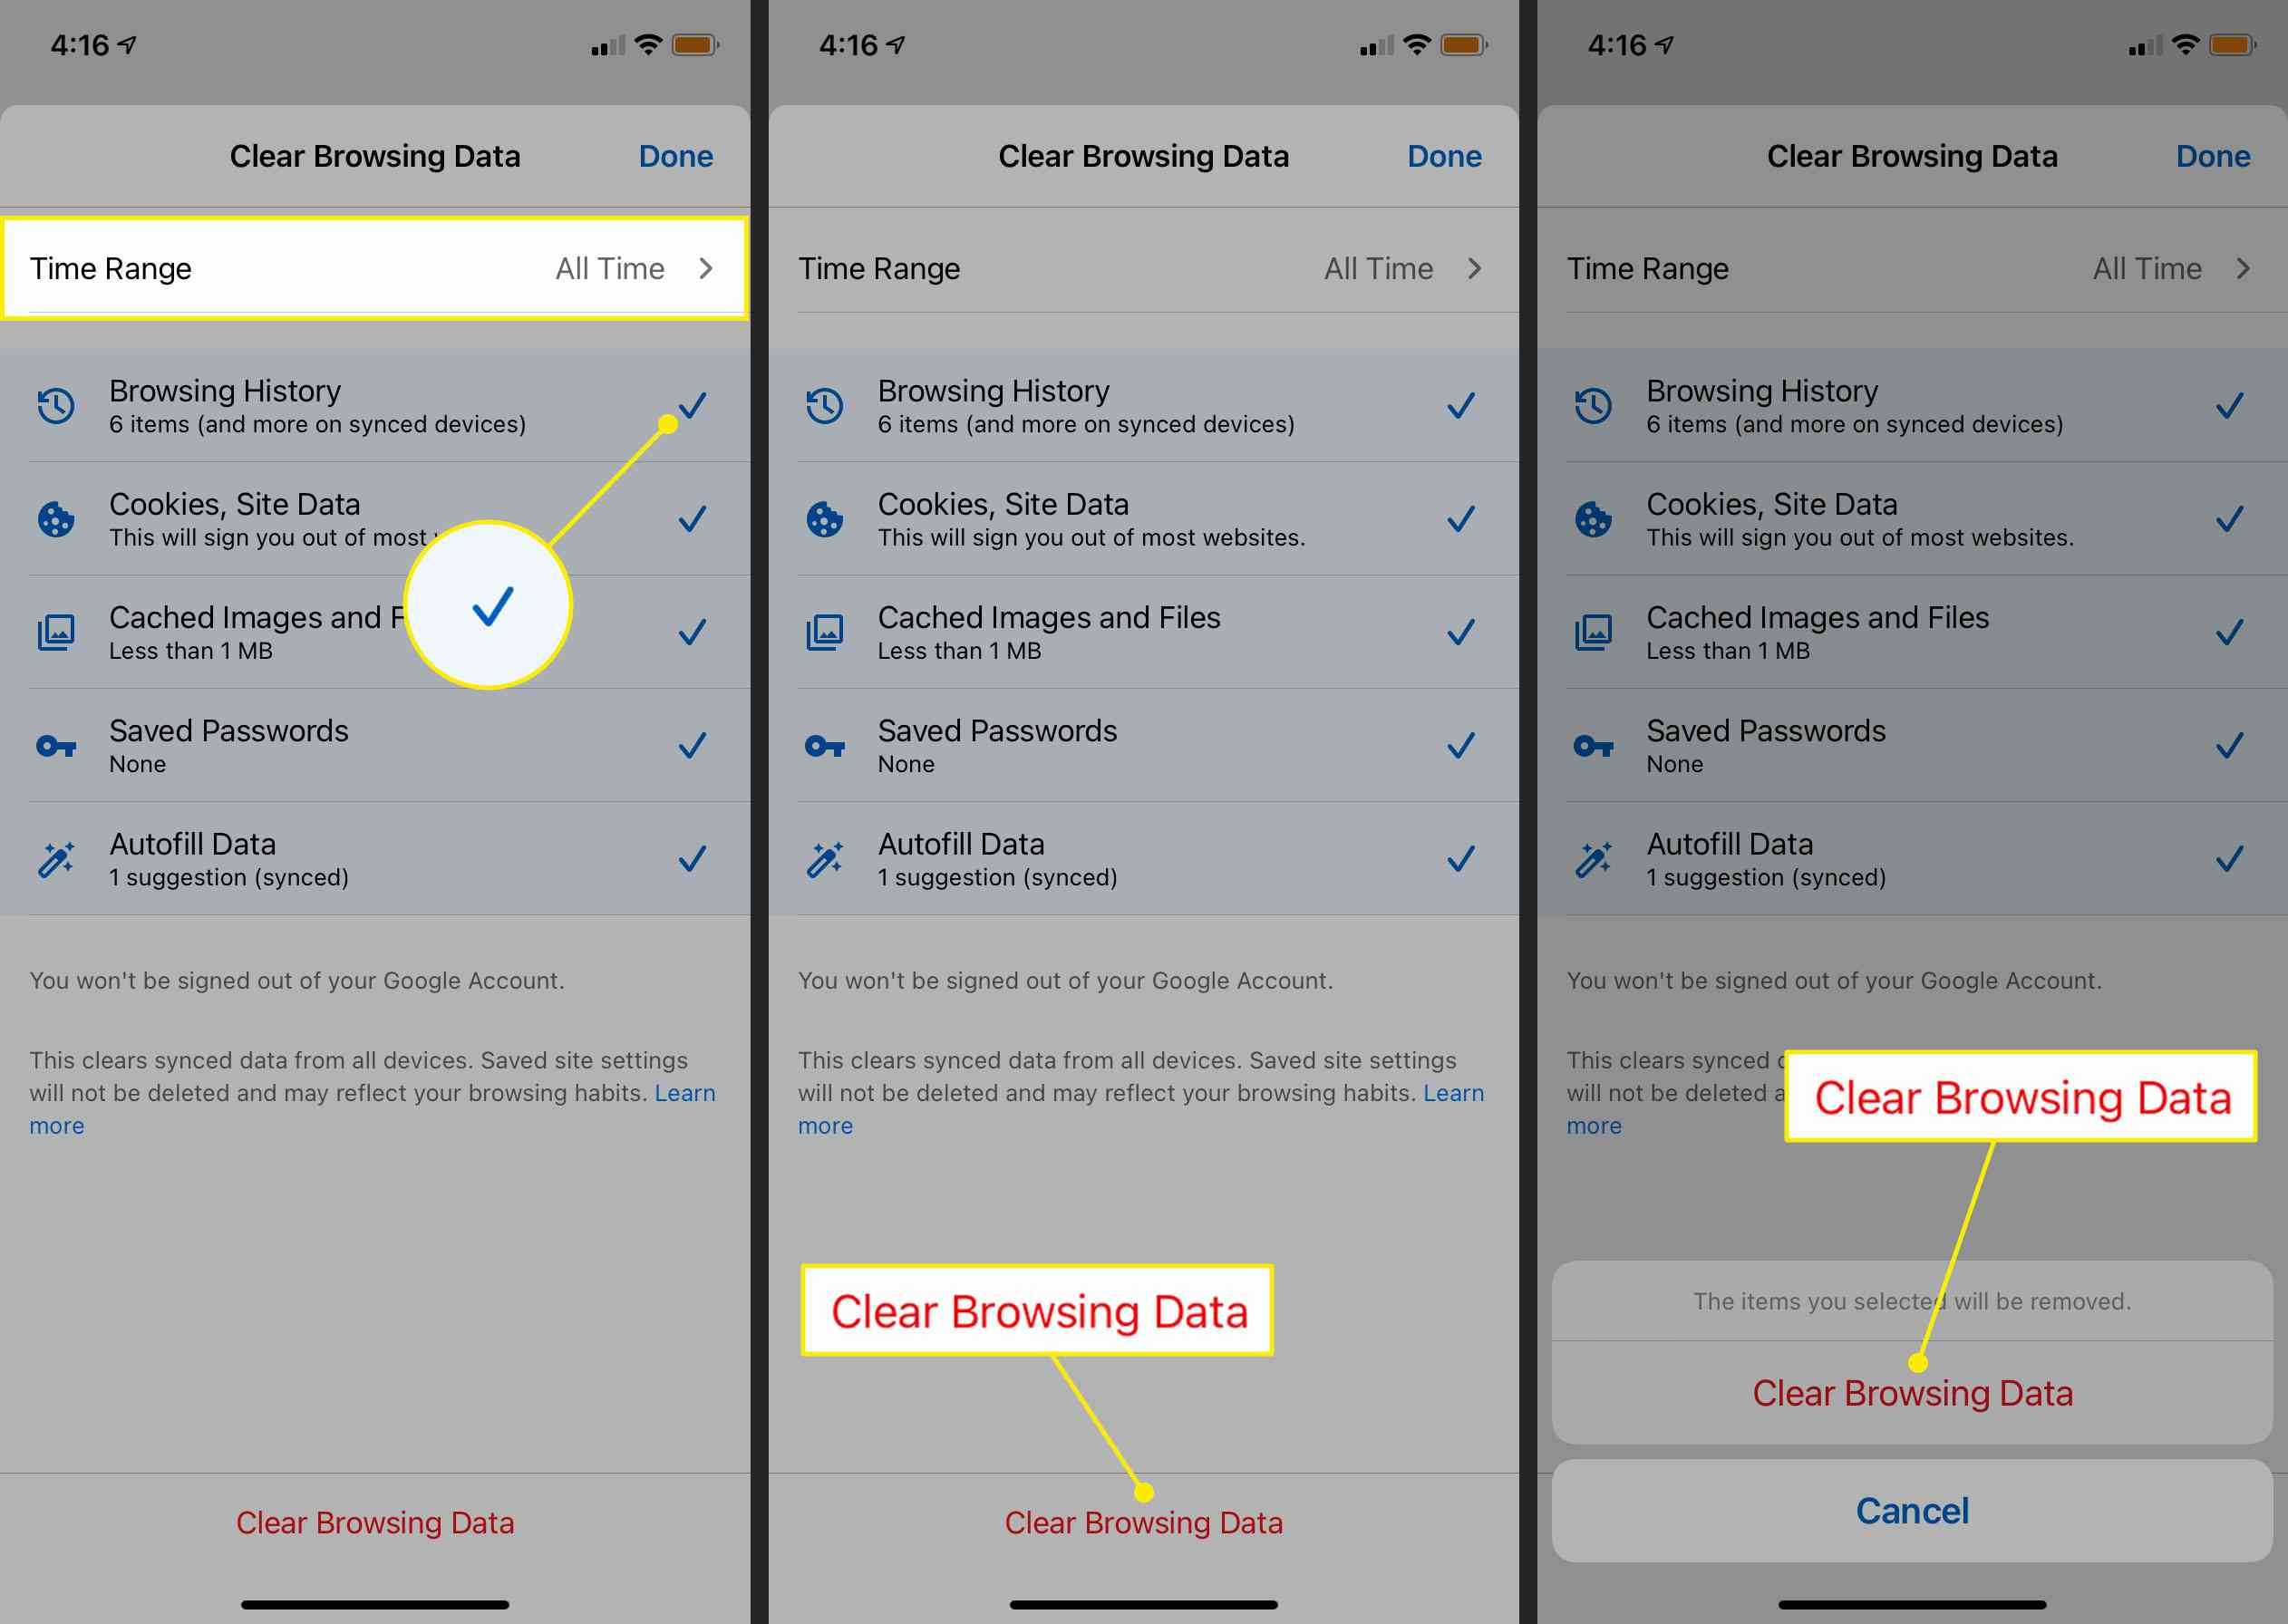 The Time Range and Clear Browsing Data commands